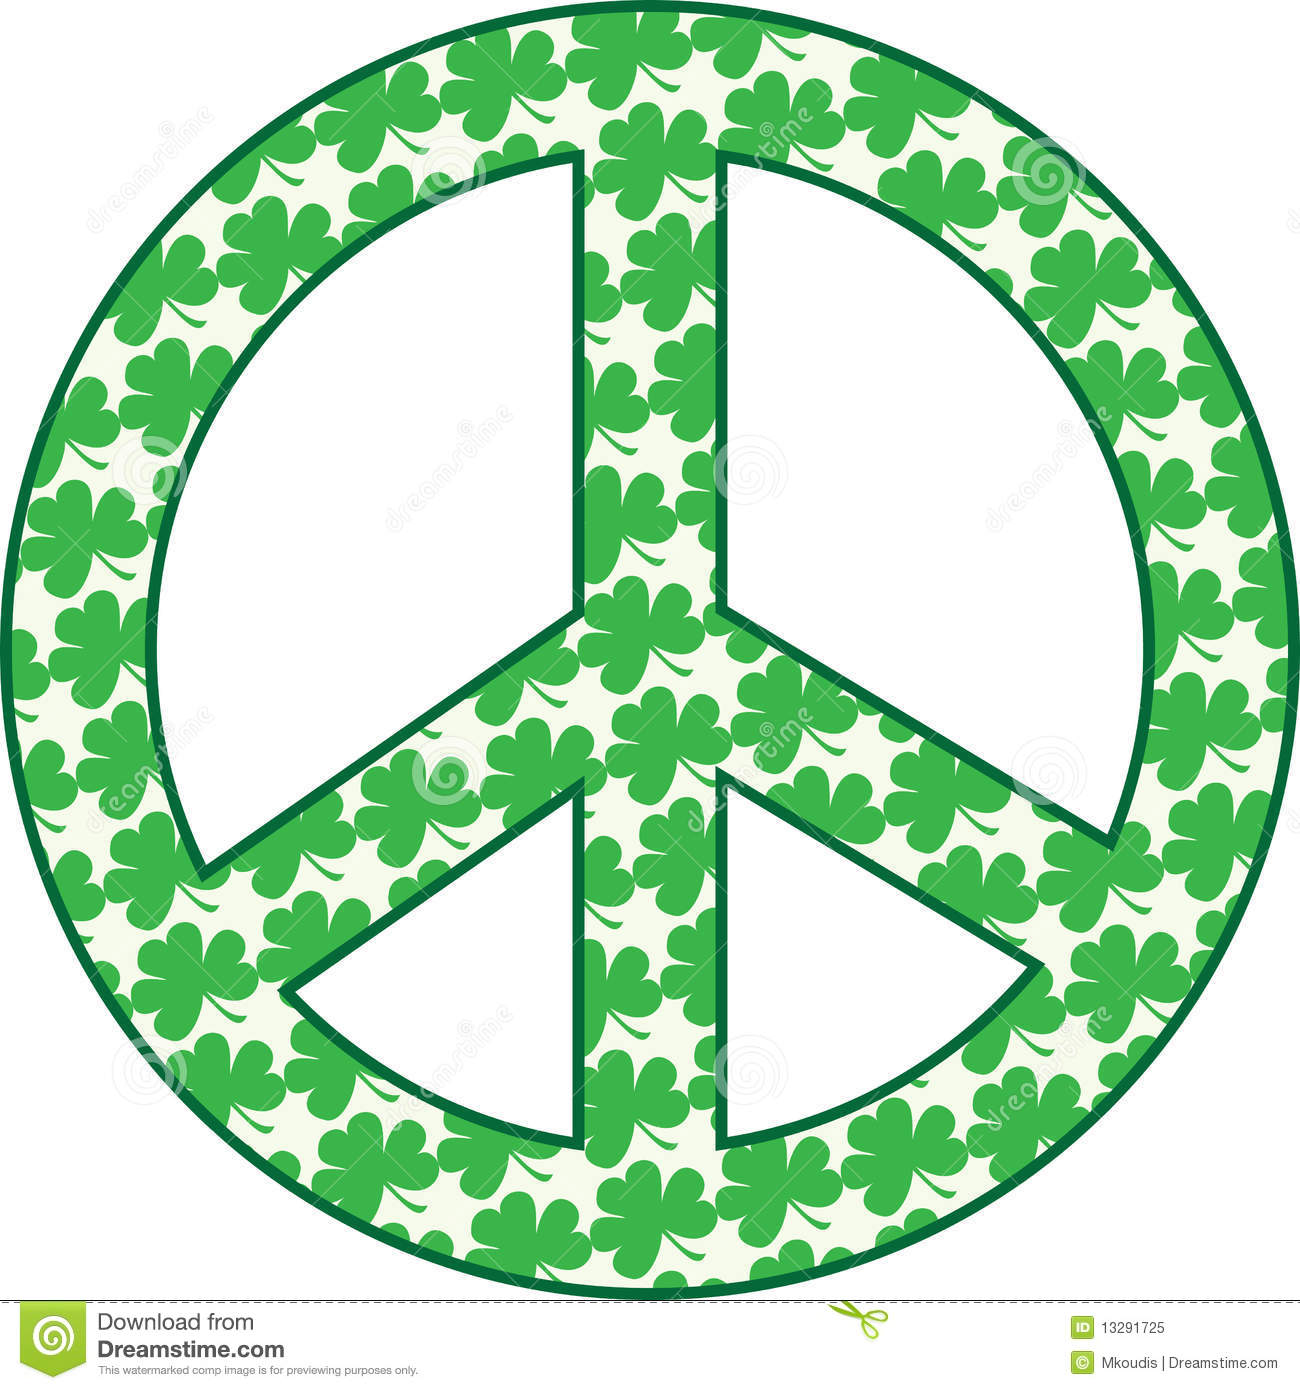 Shamrock peace sign stock illustration image of nature 13291725 shamrock peace sign biocorpaavc